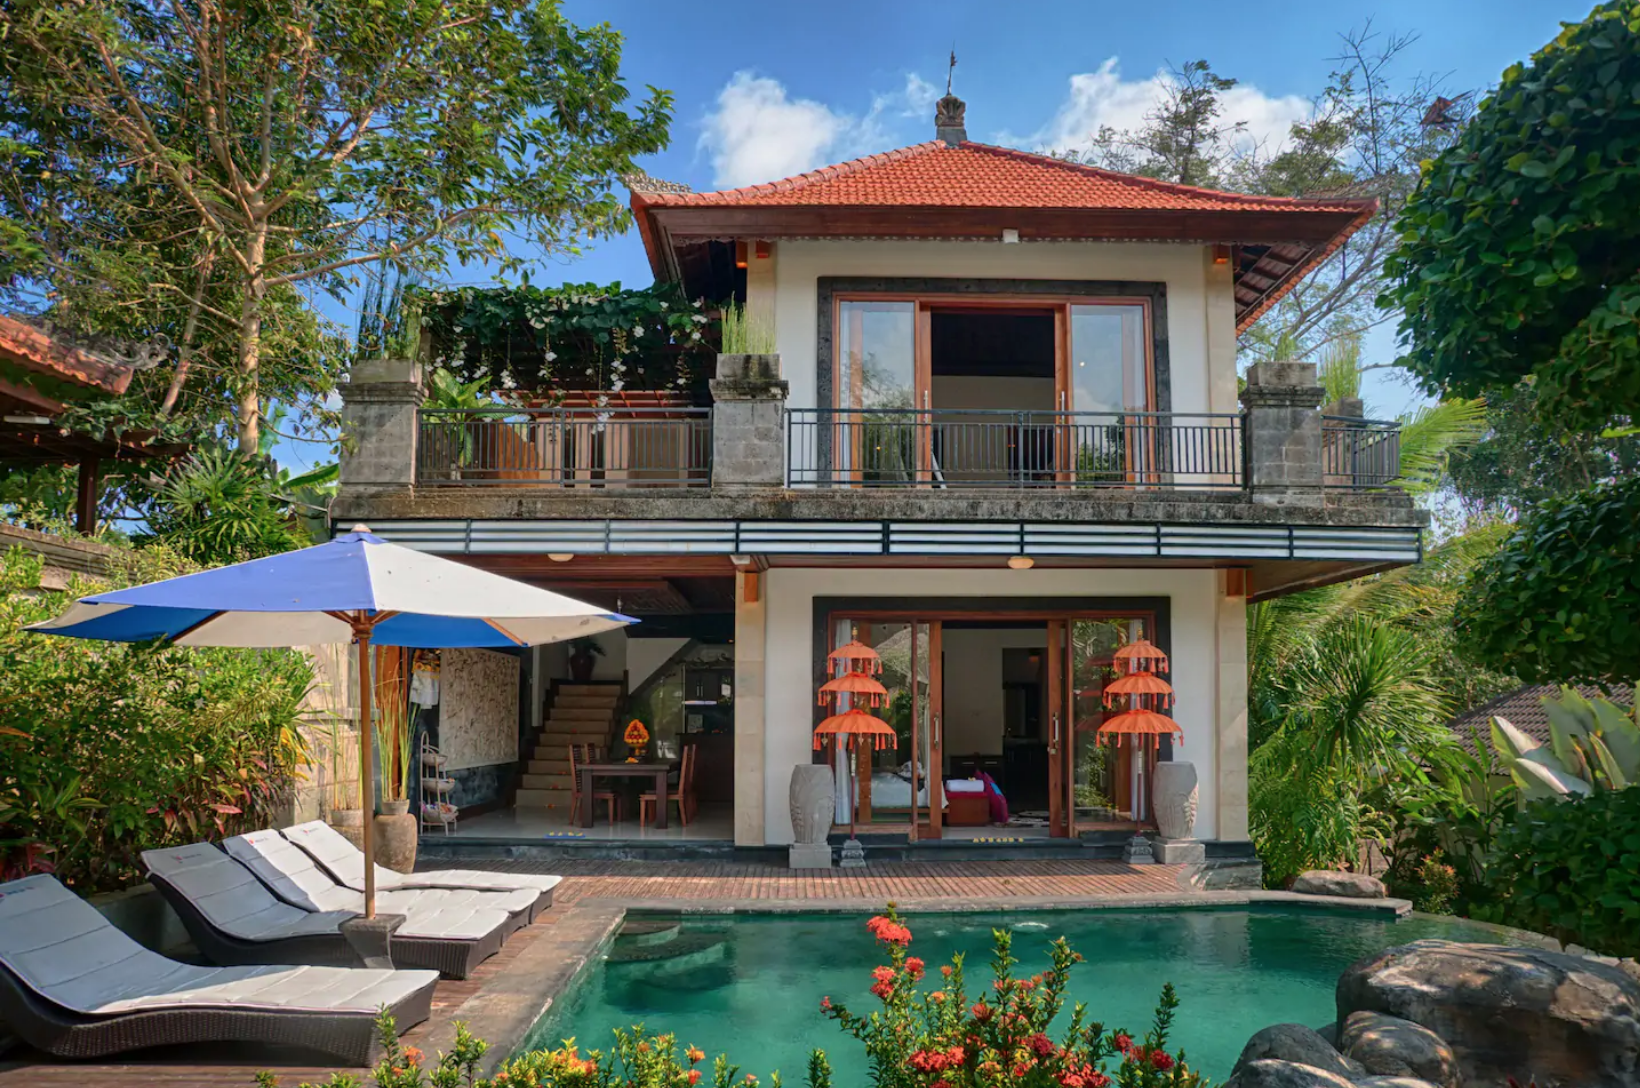 6 Captivating Airbnb Homes To Stay For Under $200 A Night